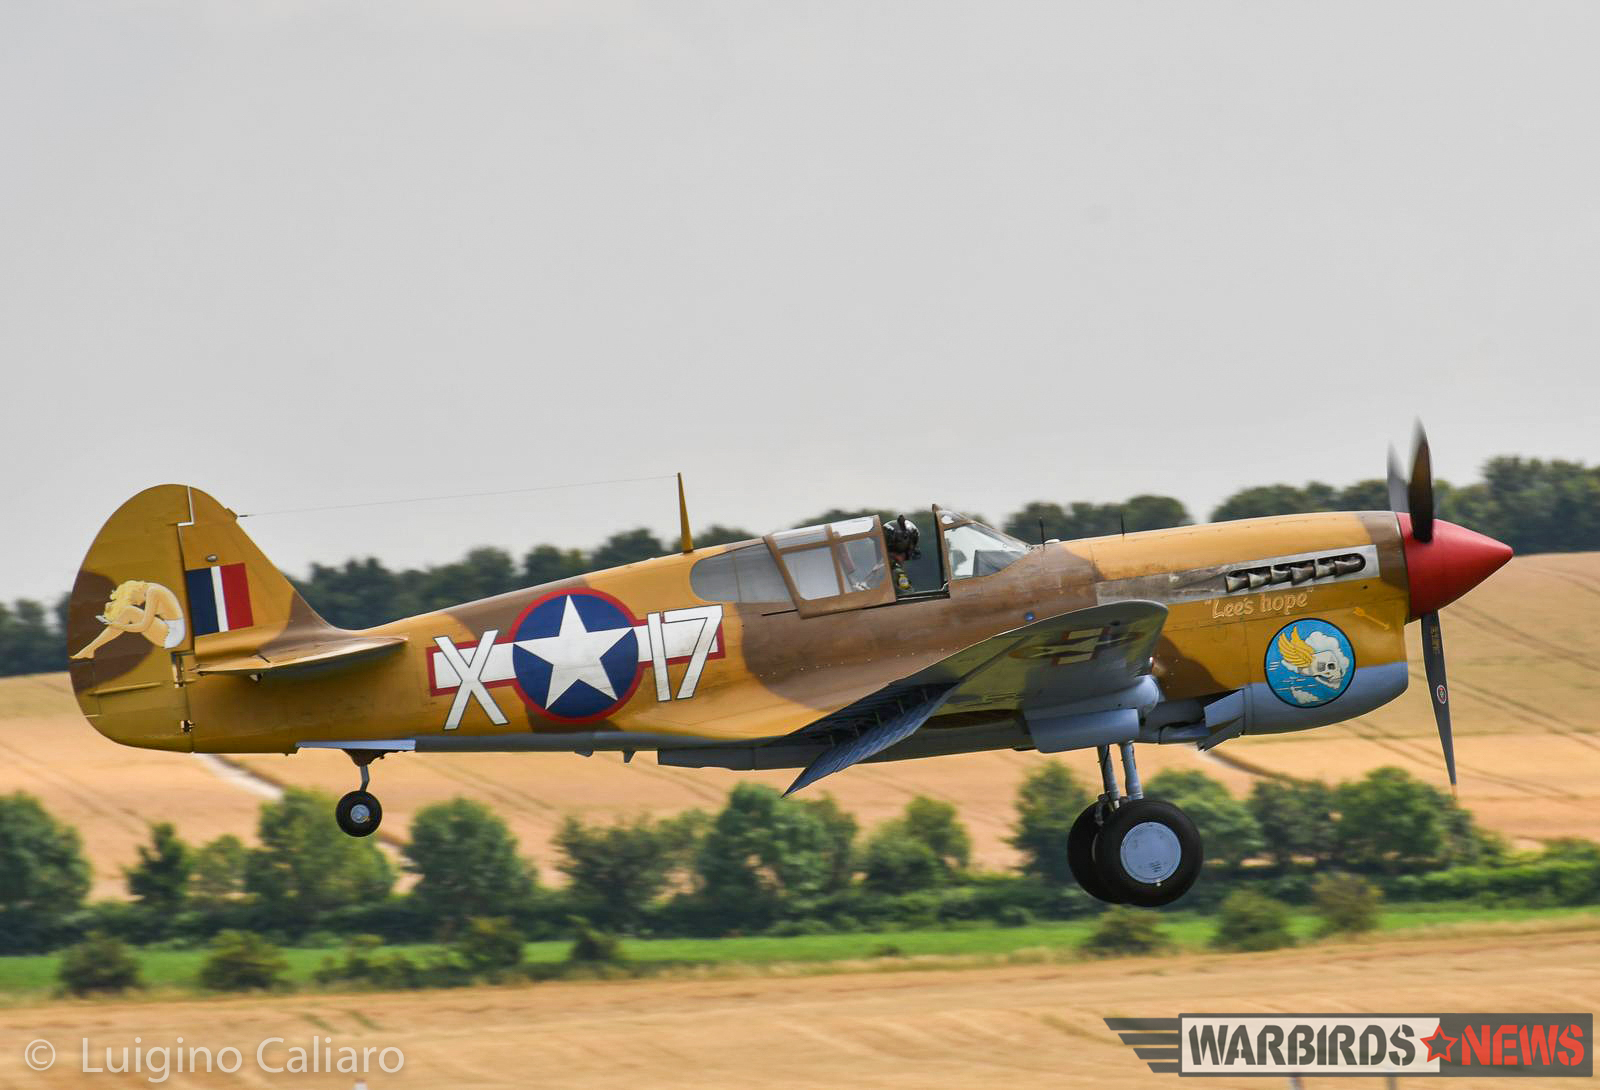 The Fighter Collection's very rare, Merlin-engined P-40F. (photo by Luigino Caliaro)